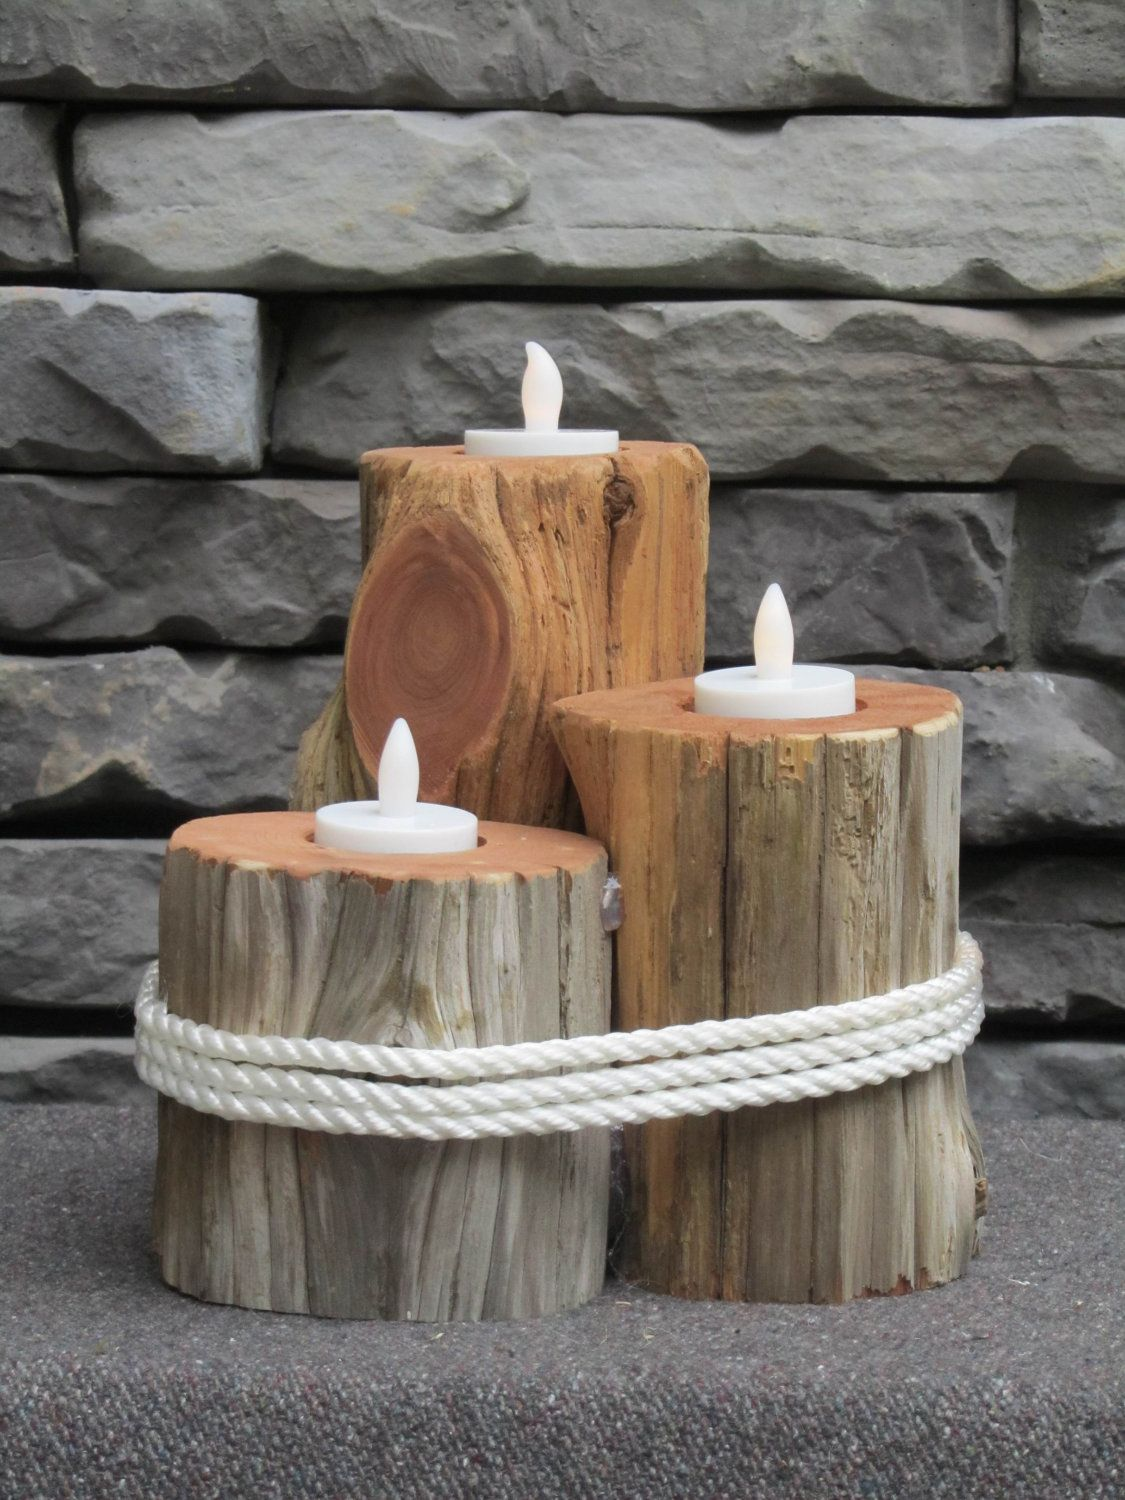 cedar driftwood candle holder bois flottes ou pas pinterest bois deco bois et bois flott. Black Bedroom Furniture Sets. Home Design Ideas